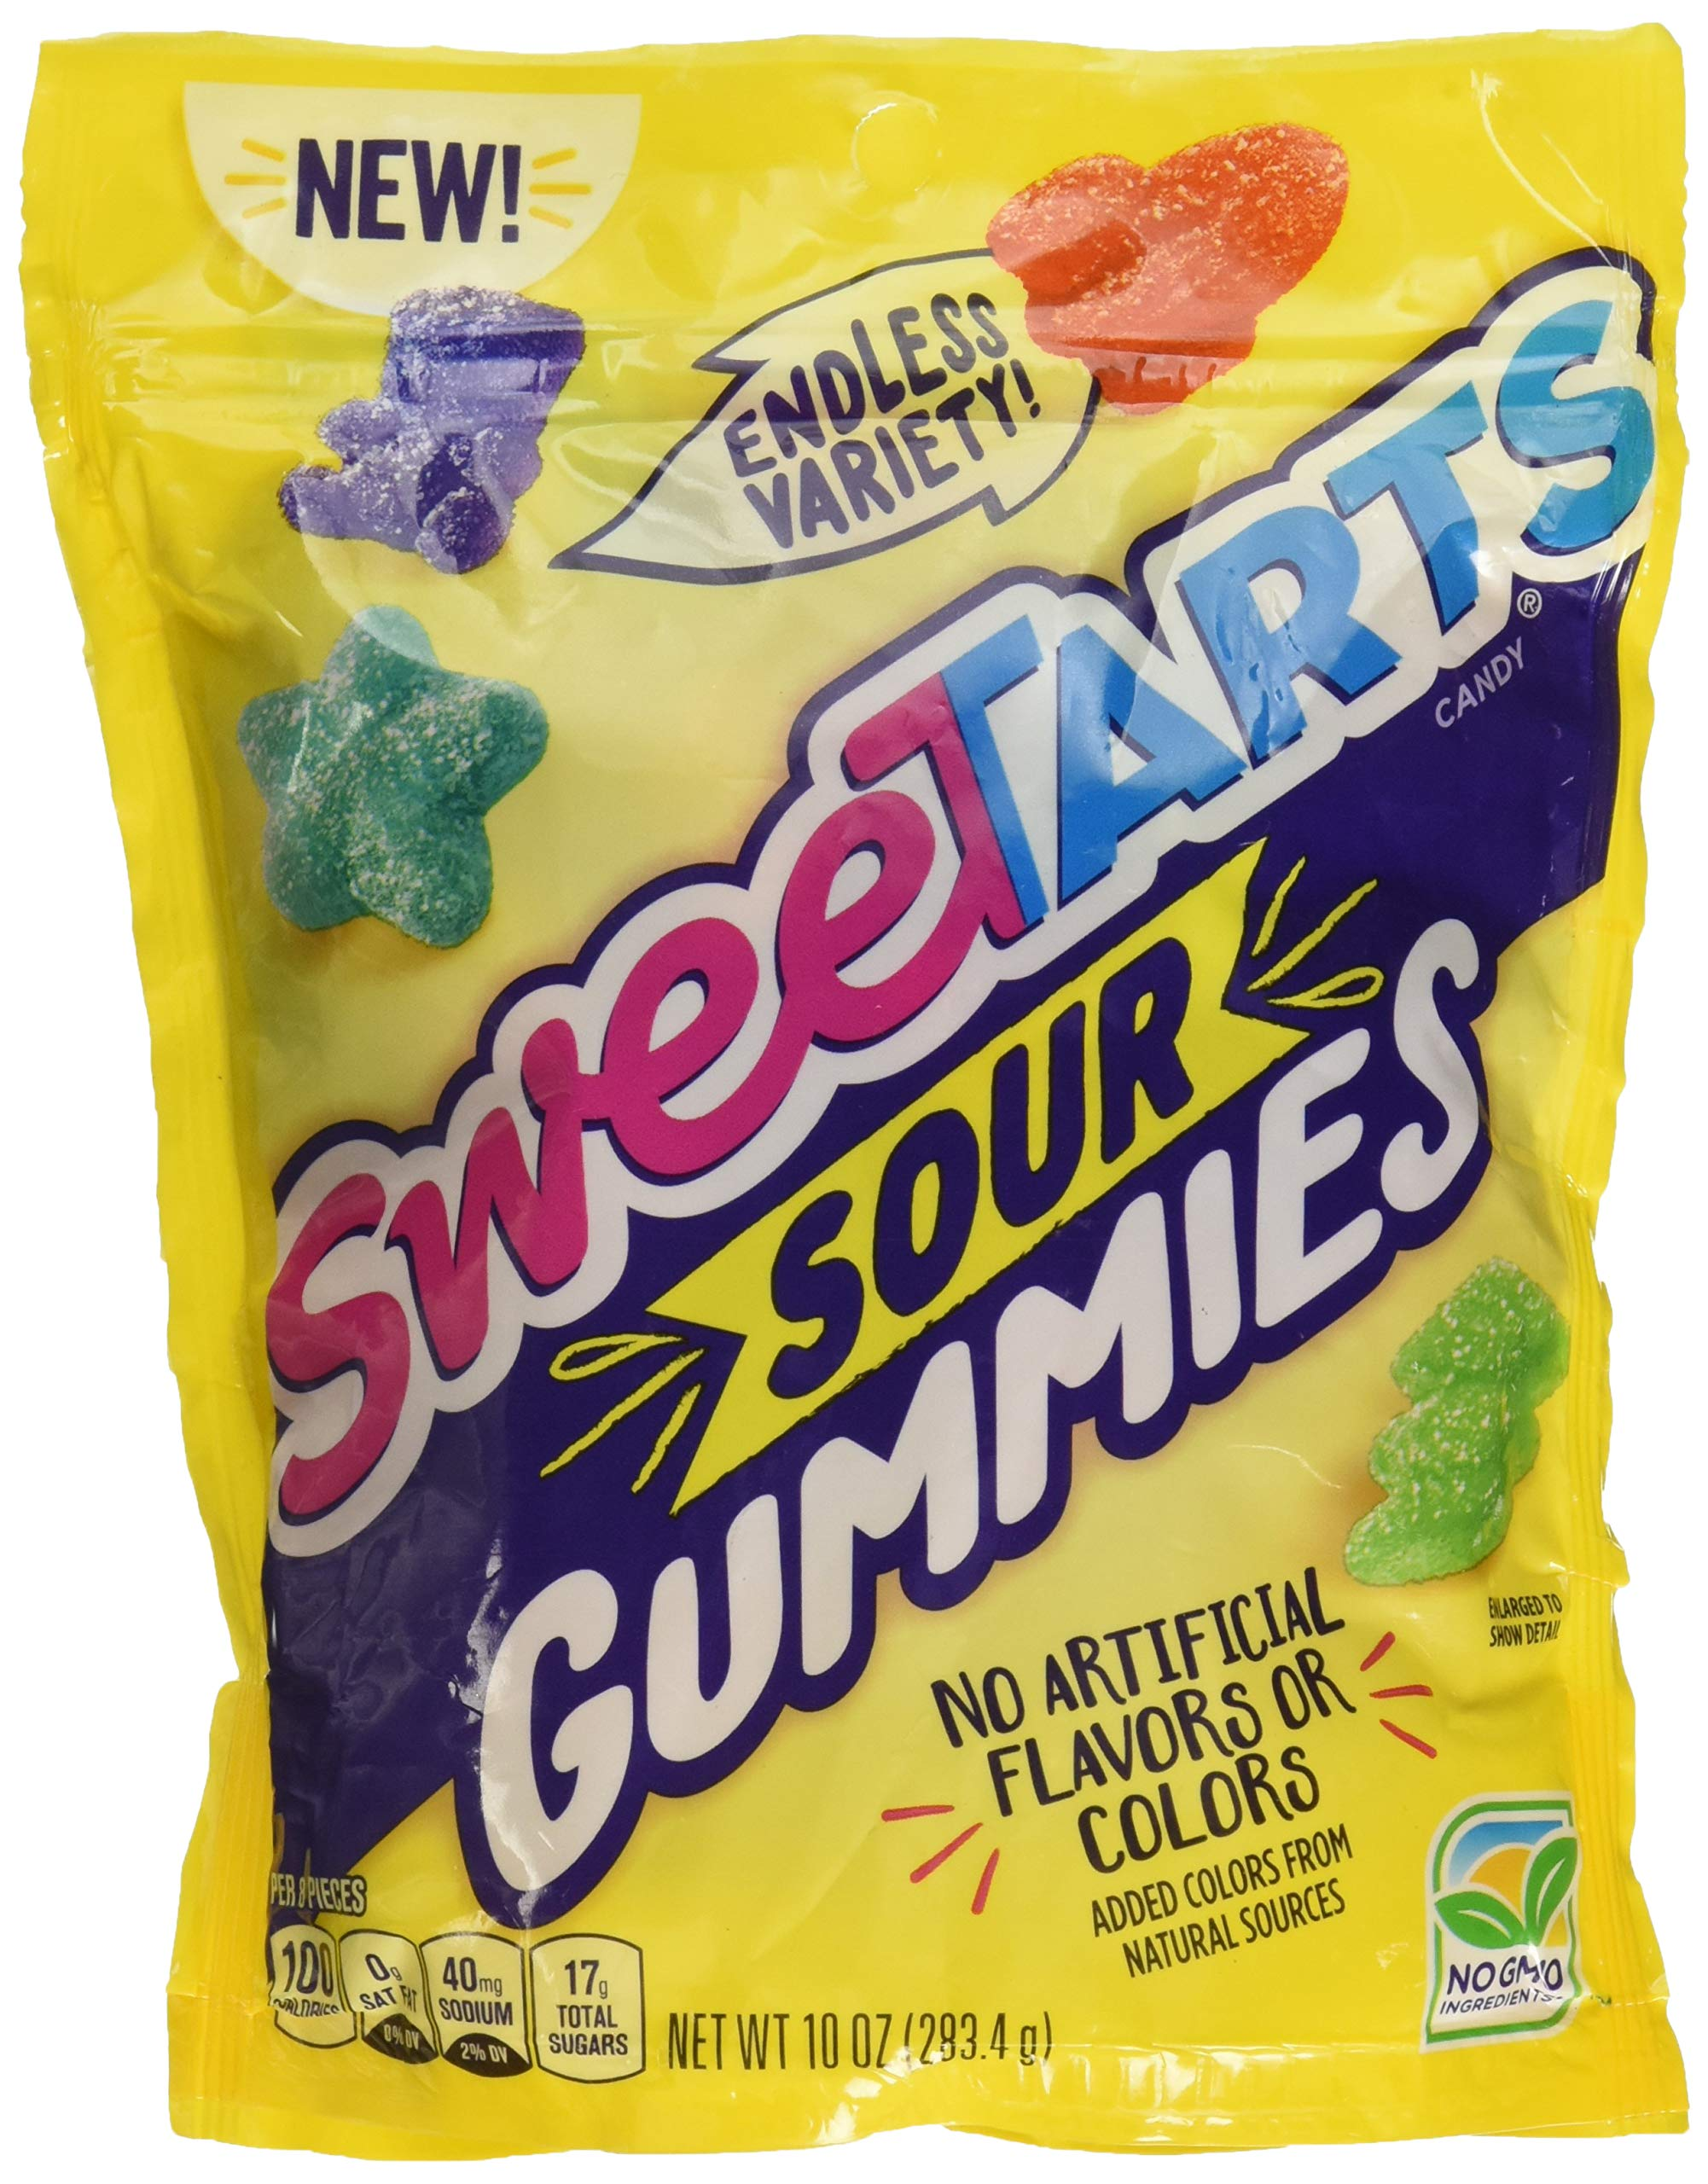 SweeTARTS Chewy Sours Re-sealable Bag, 10 Ounce (Pack of 1) by SweeTARTS